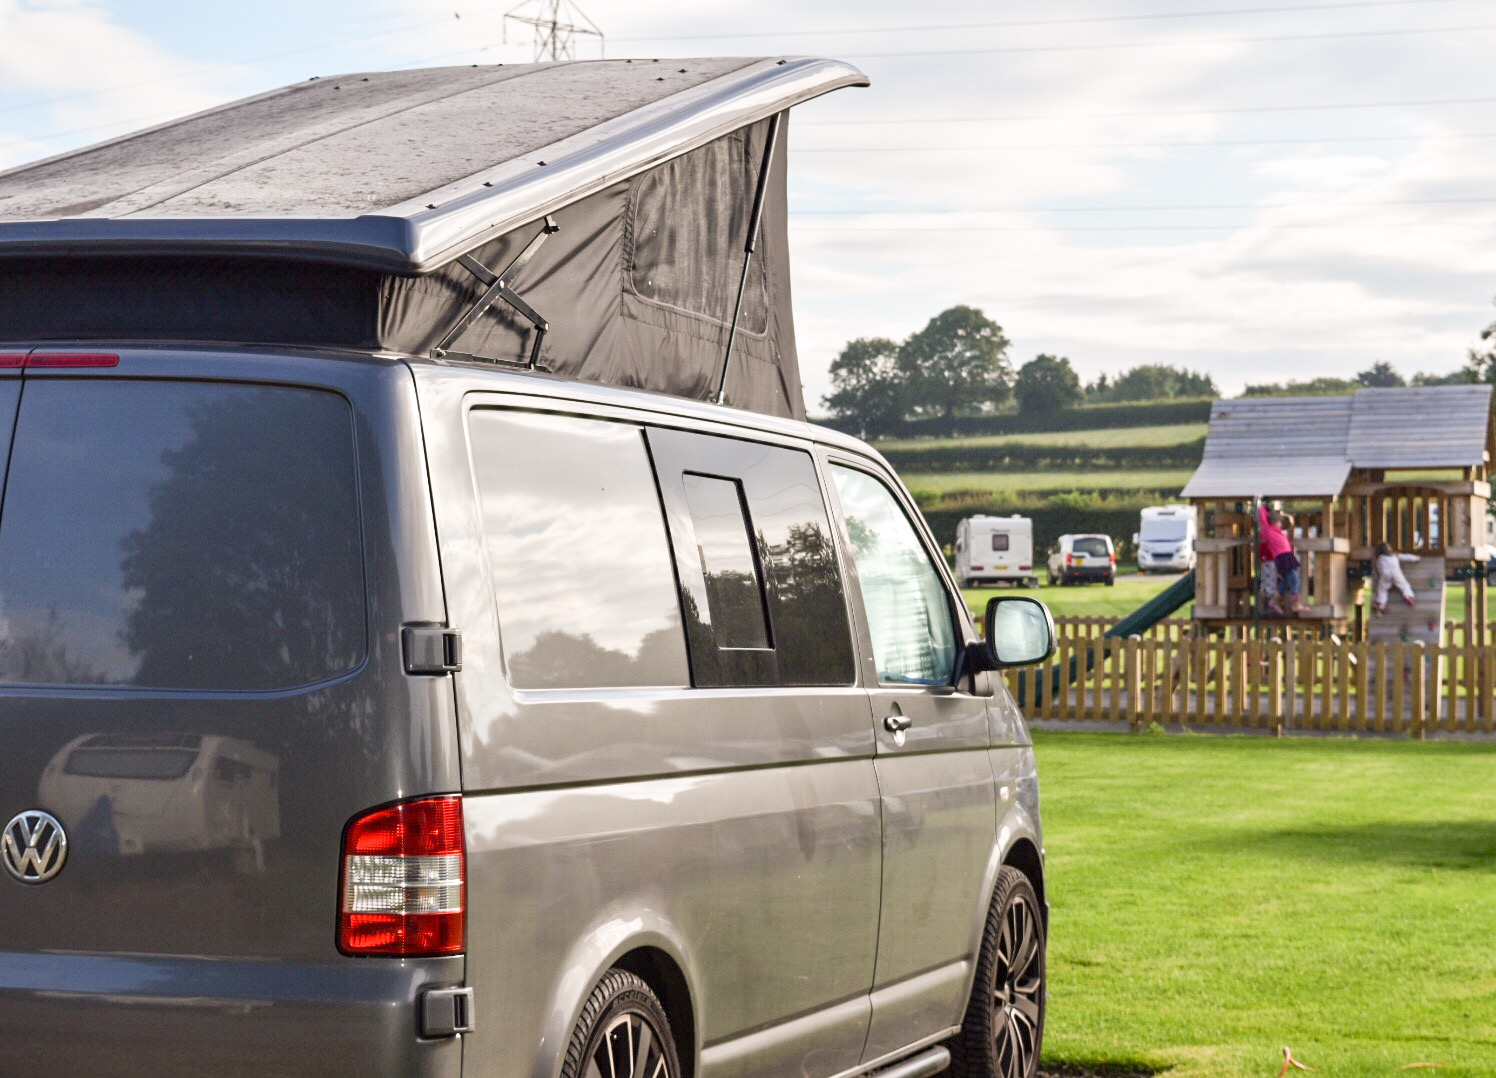 Campervan insurance for self build or converted van: Scenic insurance